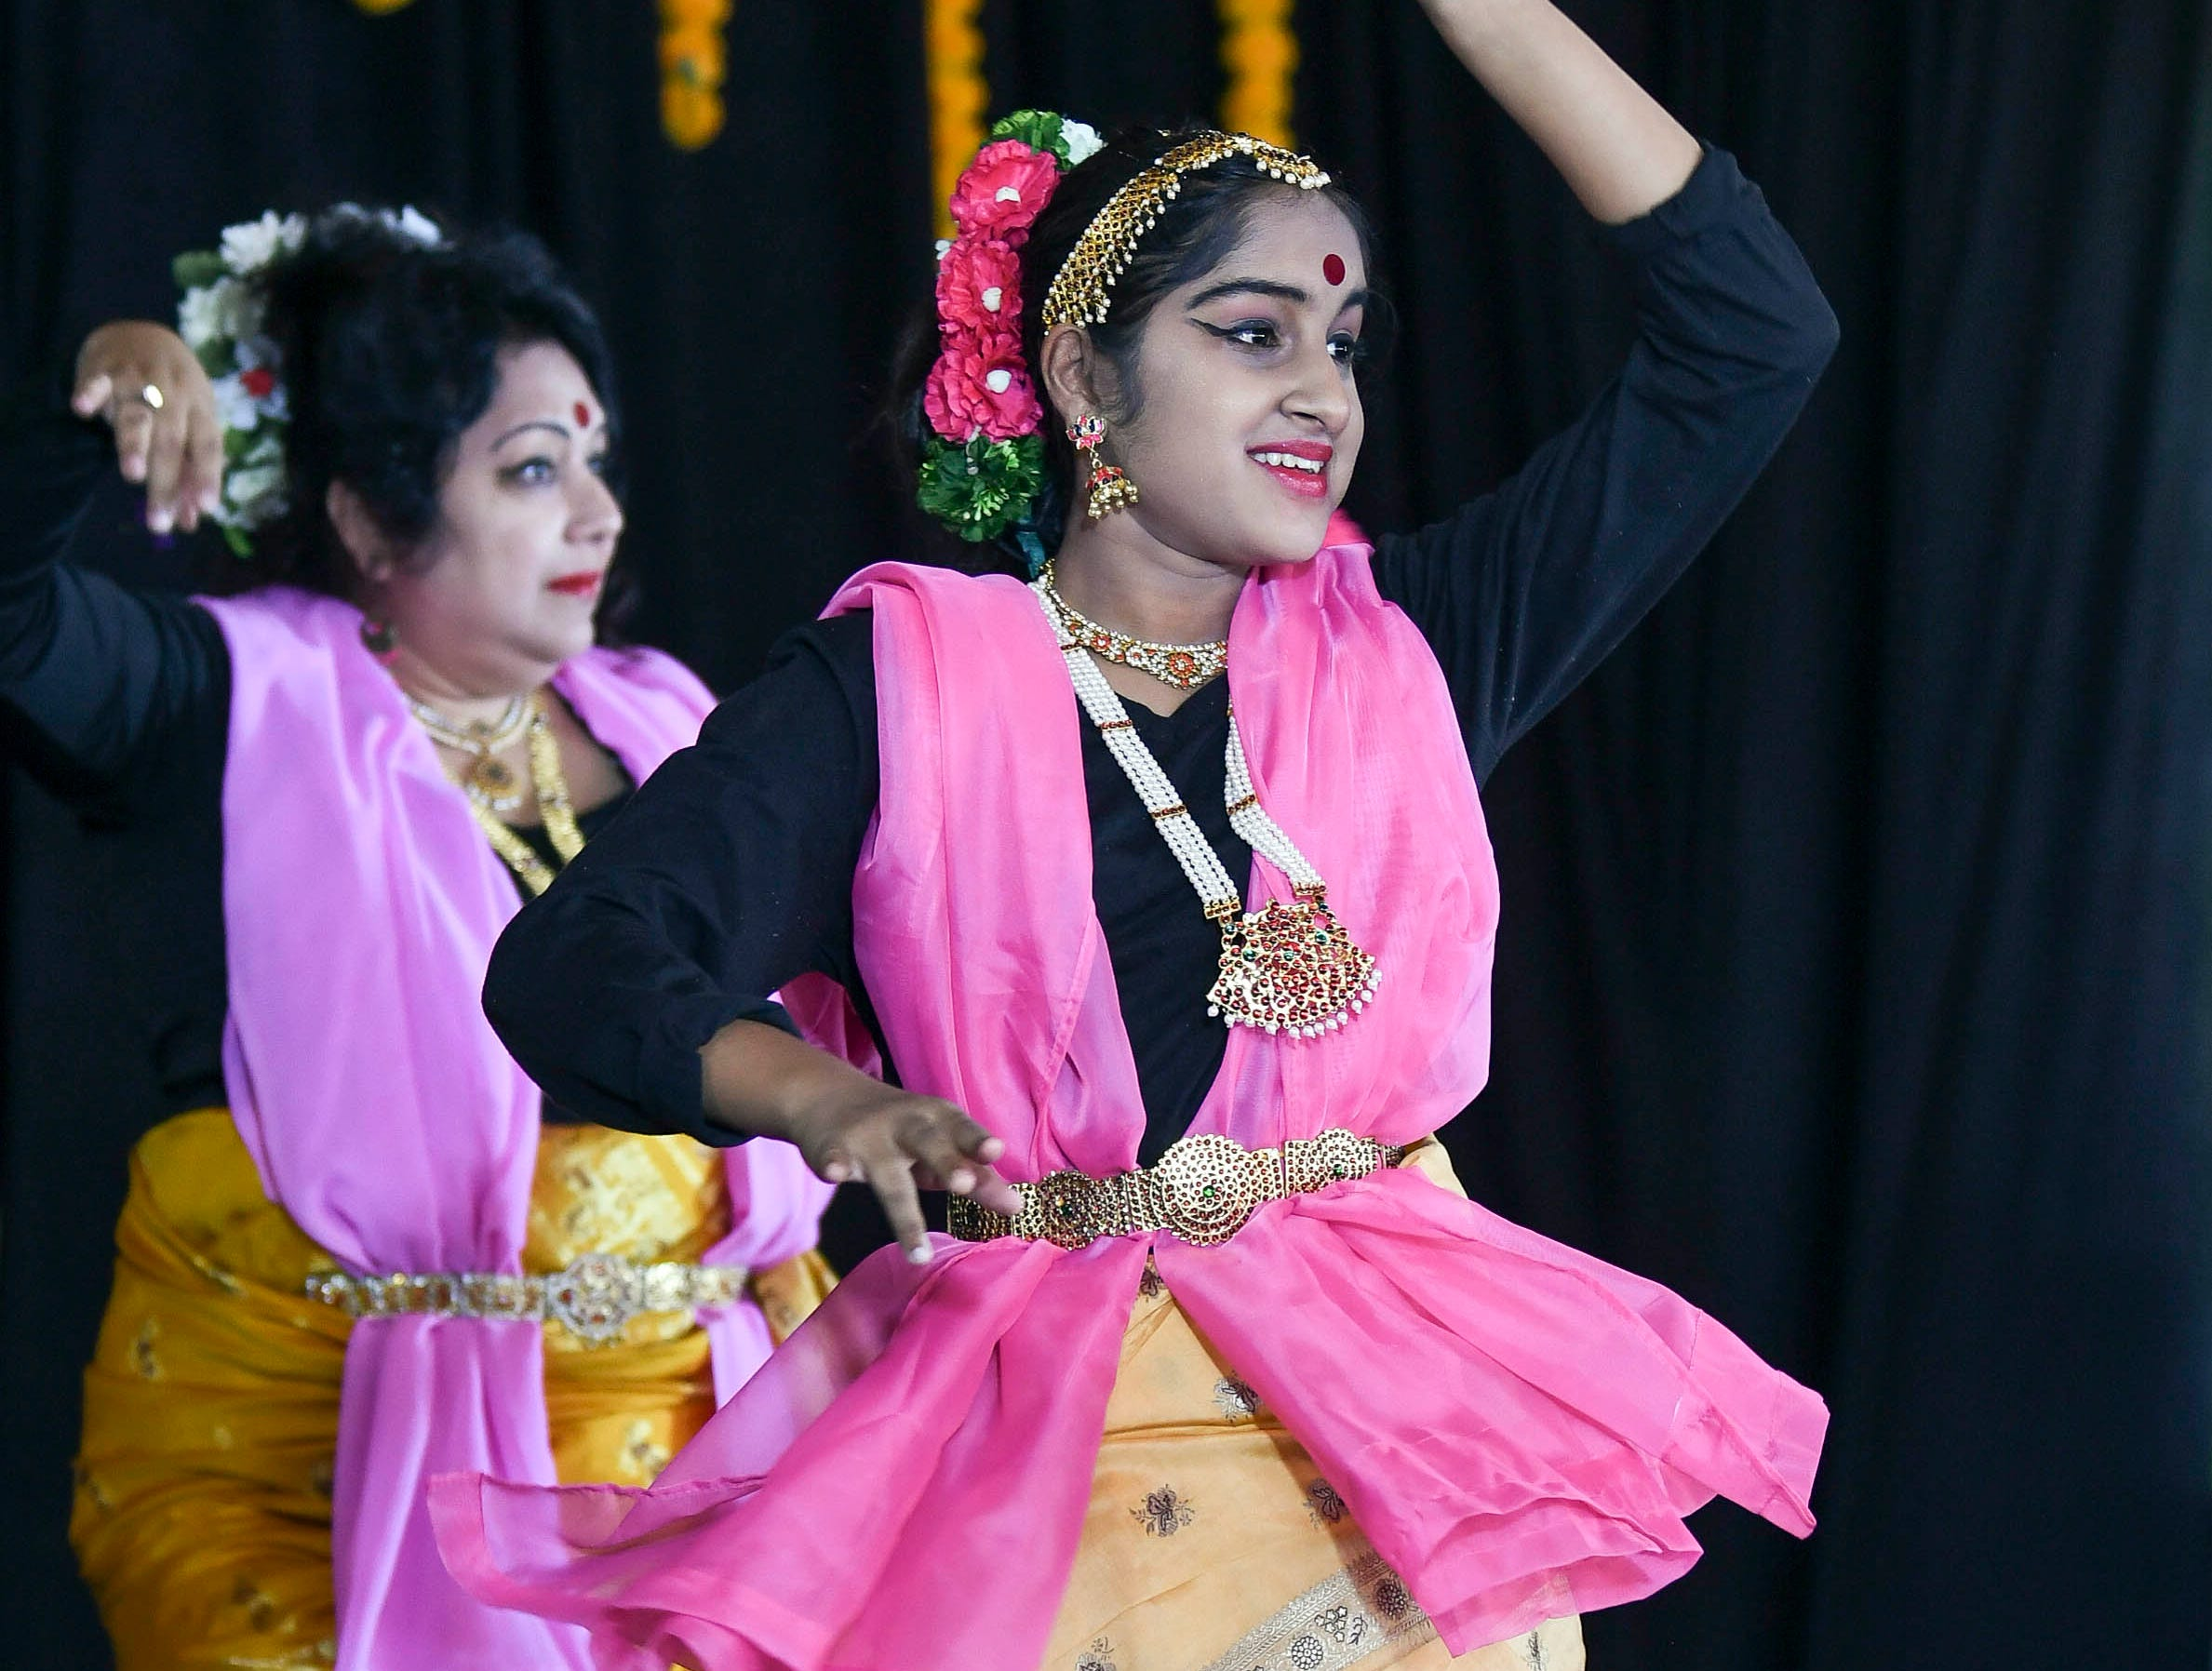 Amrita Mukherjee and her daughter Ankita perform Saturday during Indiafest at Wickham Park's main pavilion.